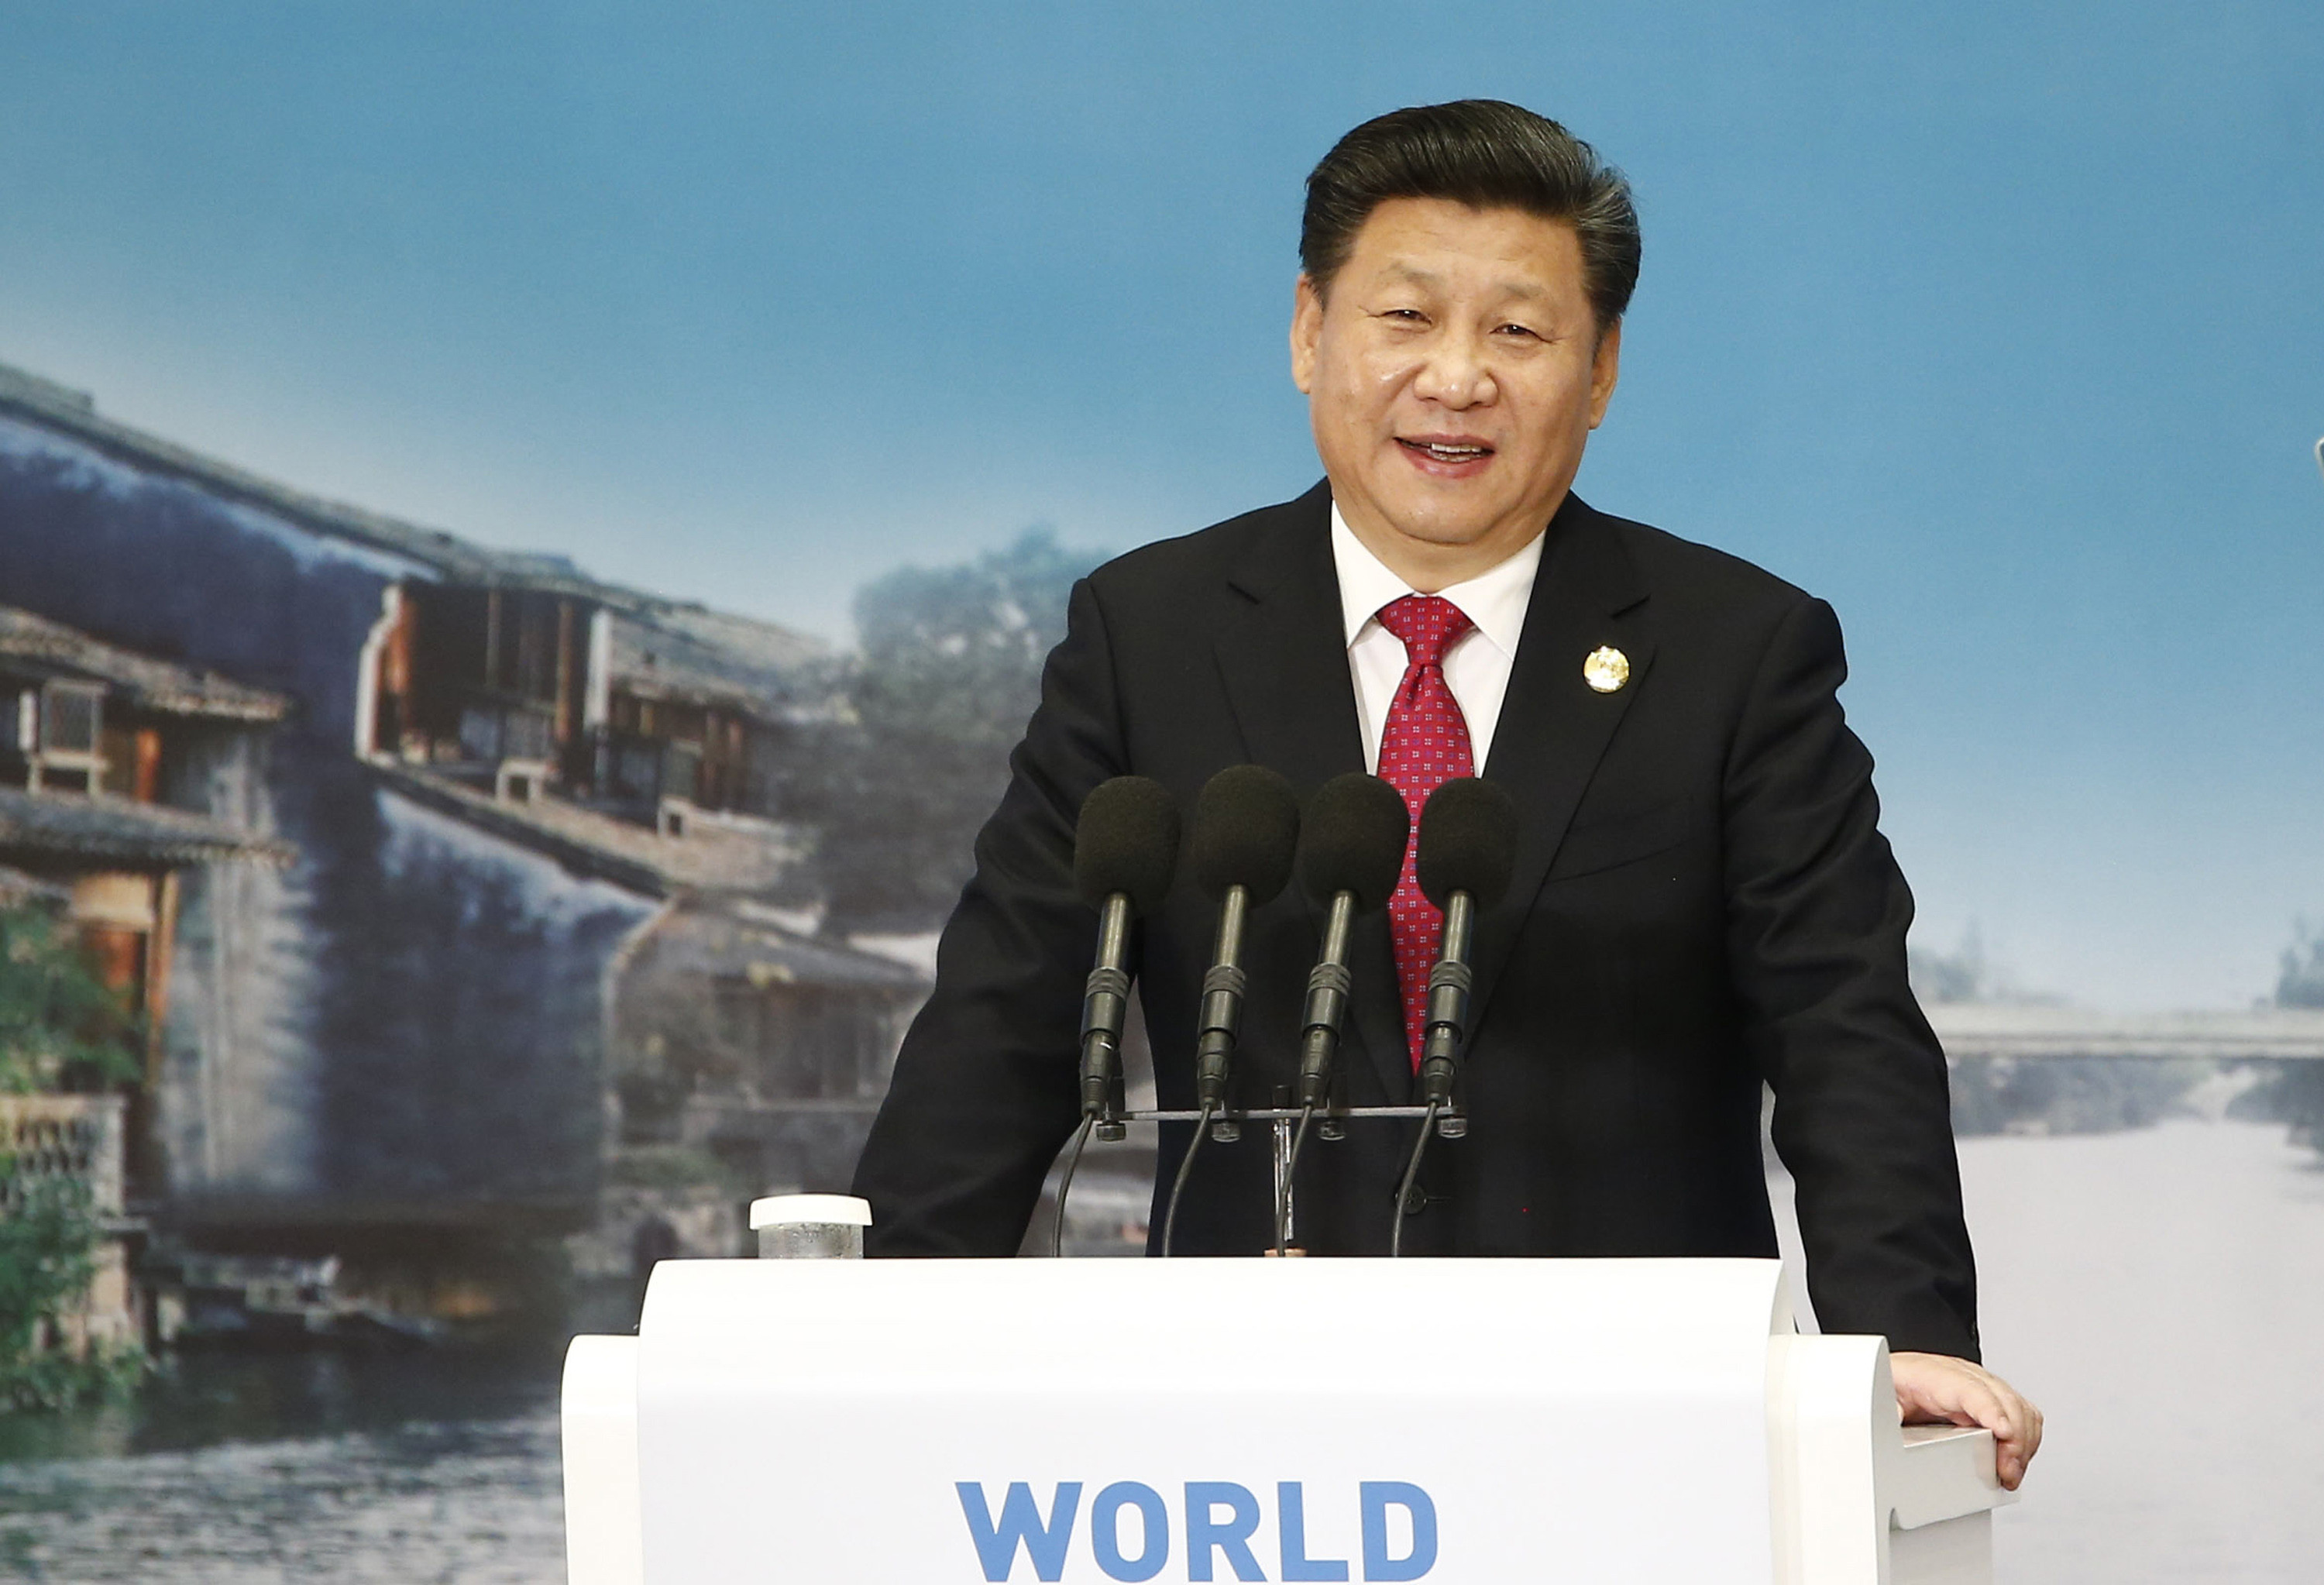 xi jinping internet conference